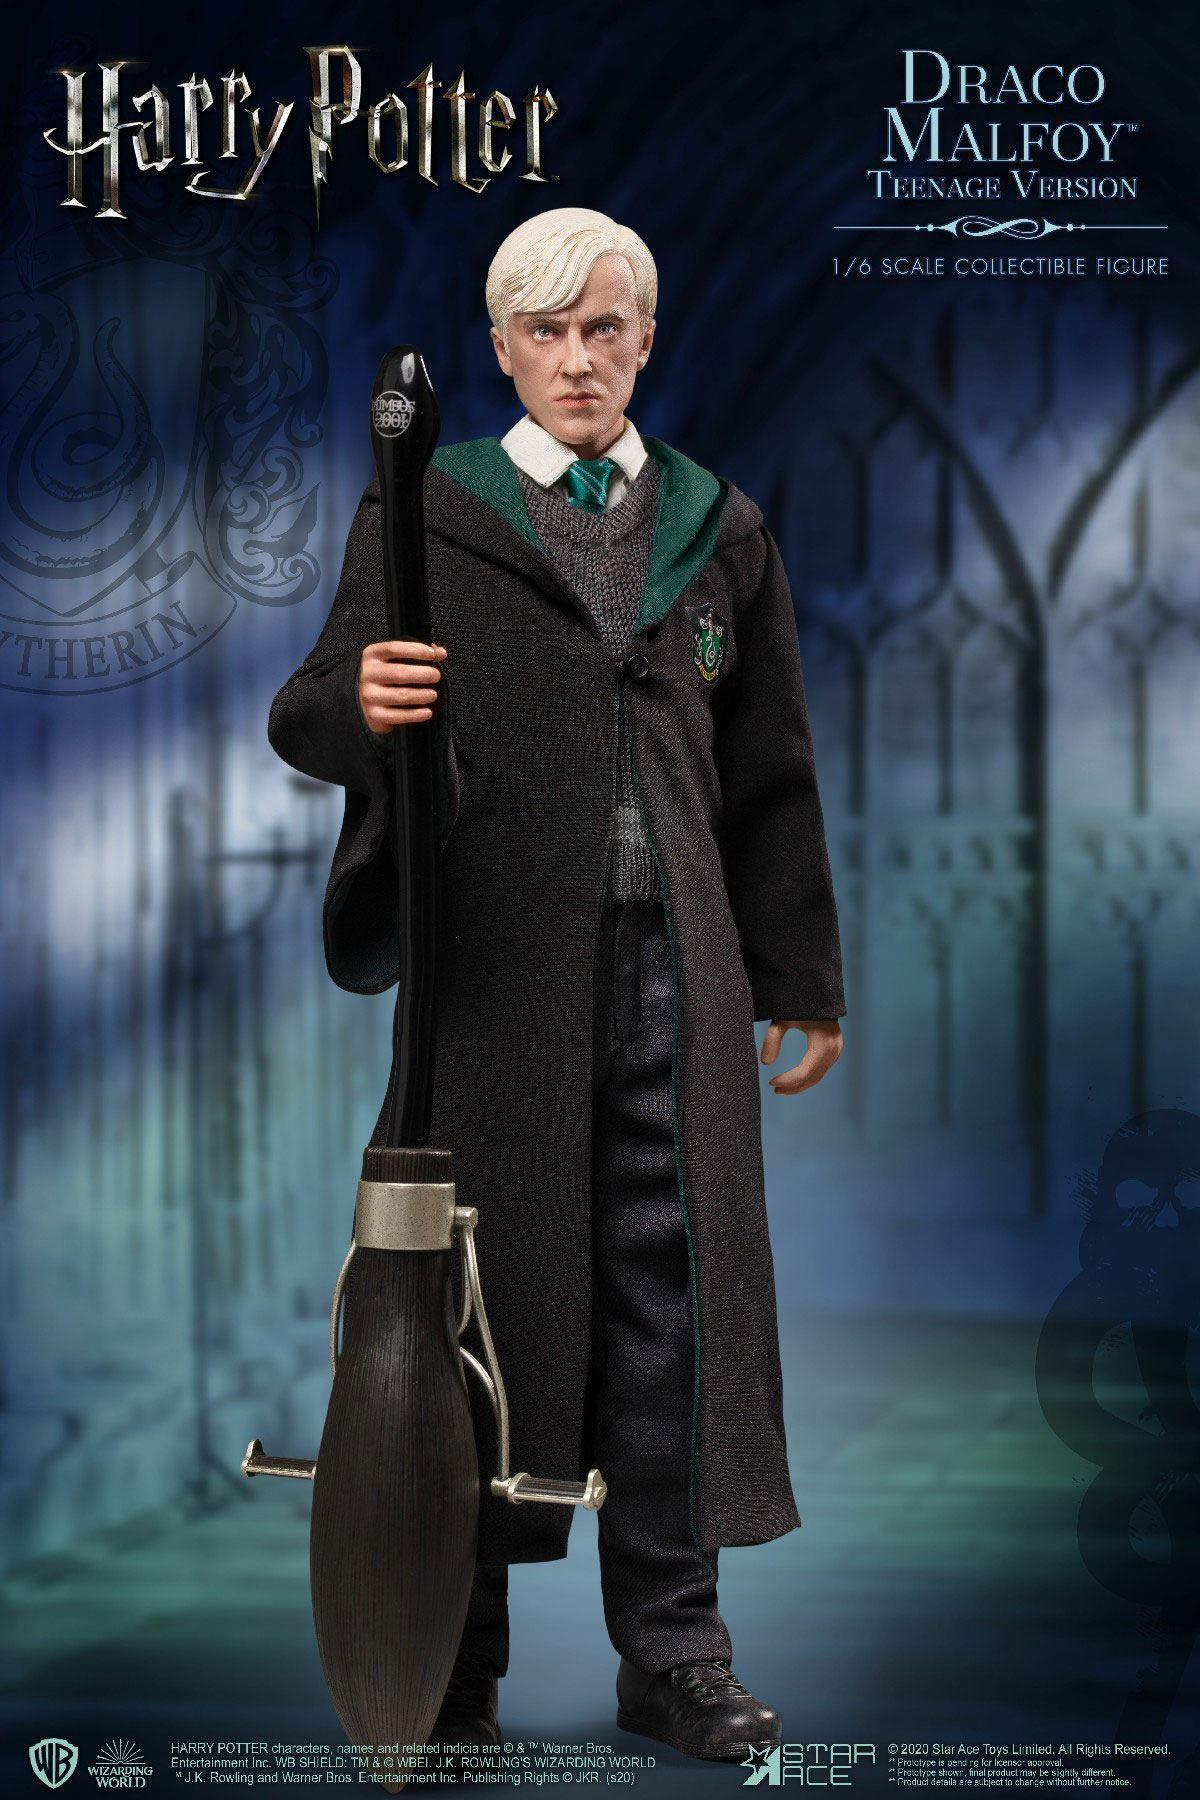 Harry potter my favourite movie figurine 16 draco malfoy teenager deluxe version 26 cm 3